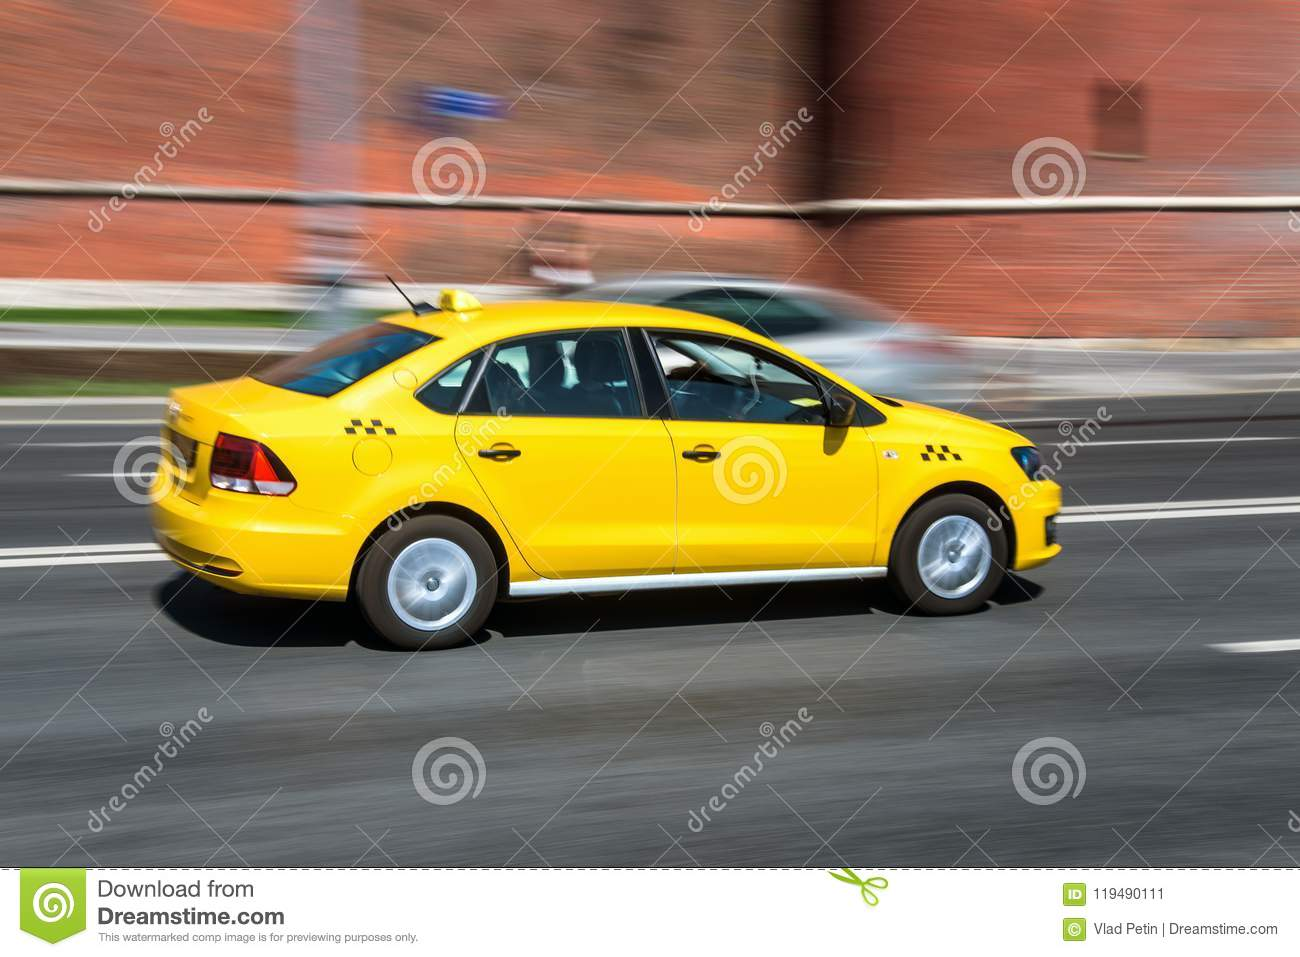 separation shoes 8c77e 75236 Yellow taxi cab speeding stock image. Image of brooklyn ...